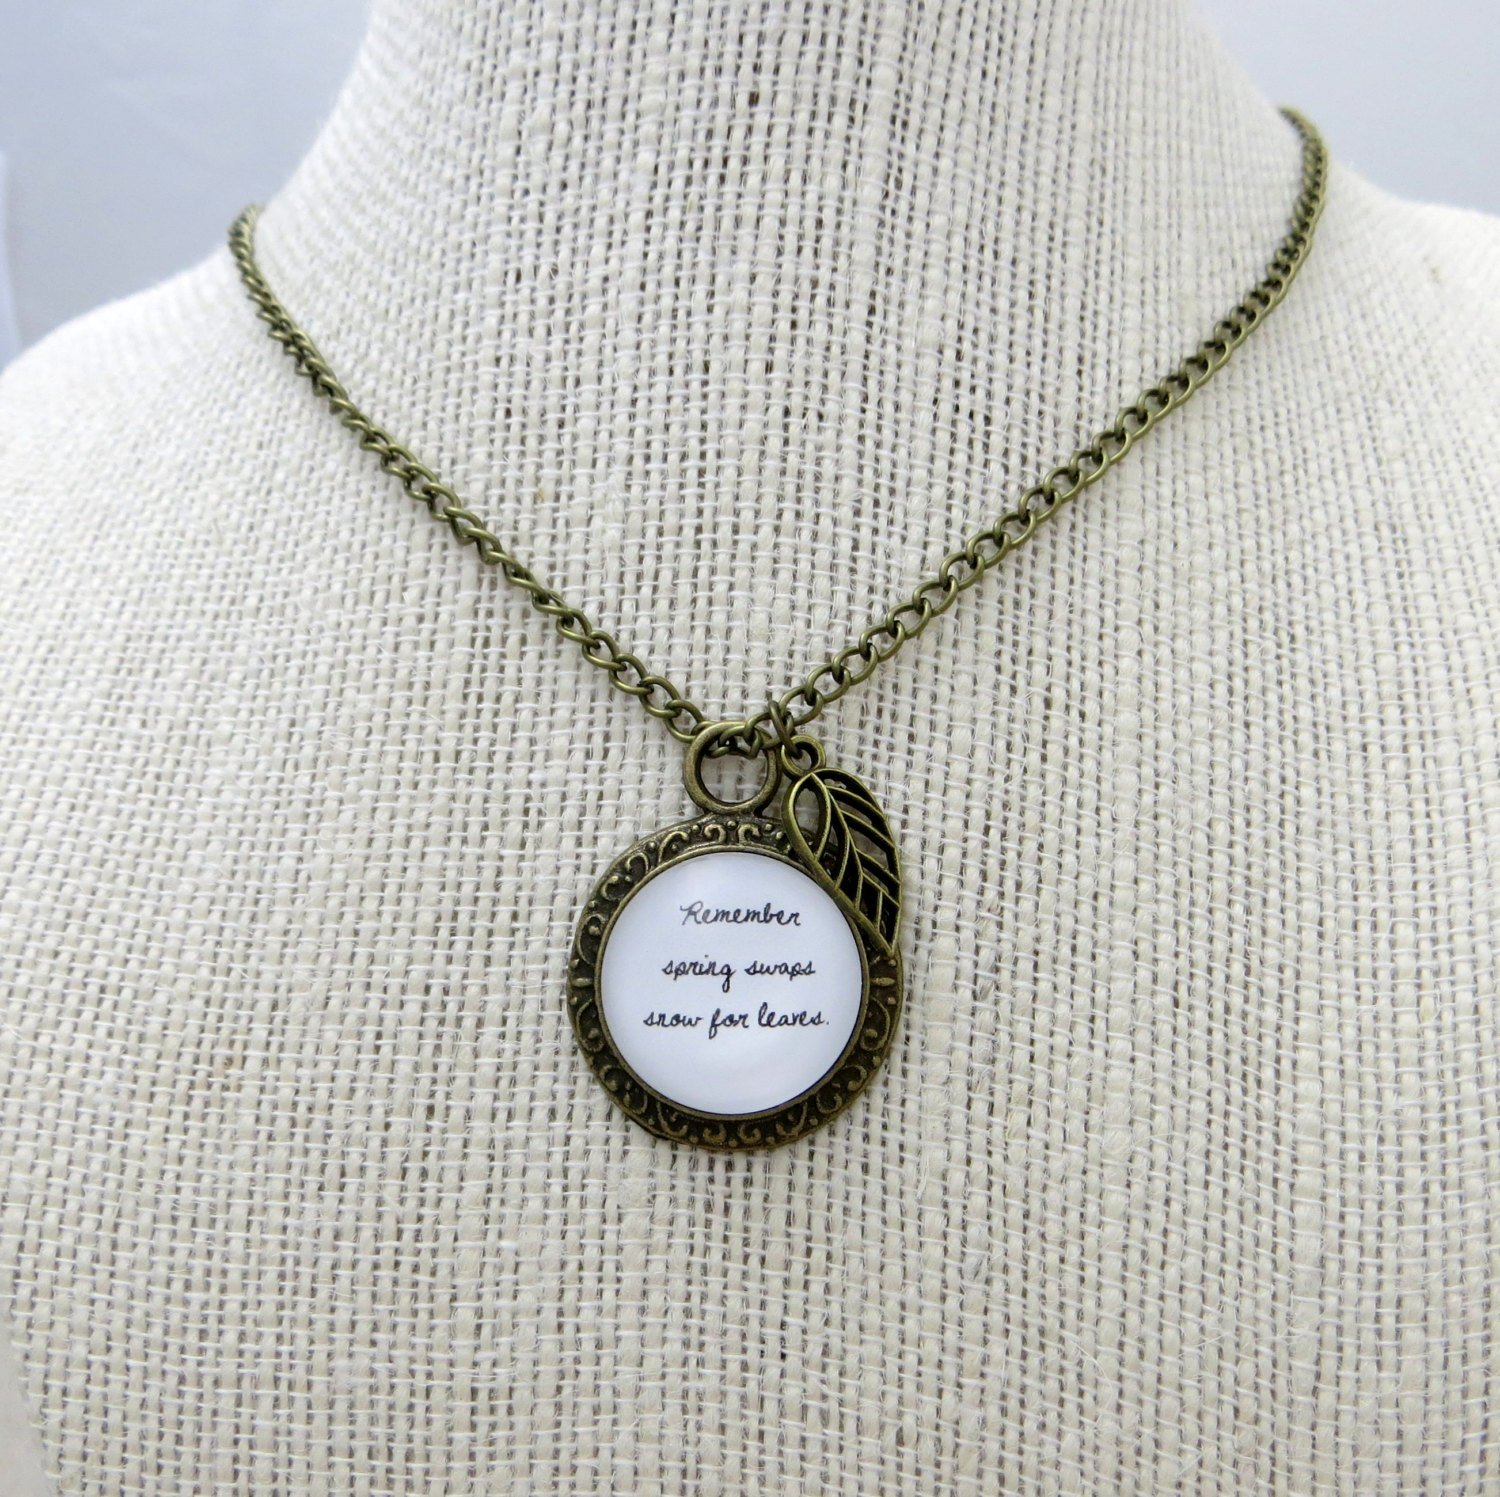 Mumford and Sons Winter Winds Inspired Lyrical Quote Necklace(Brass, 18 inches)